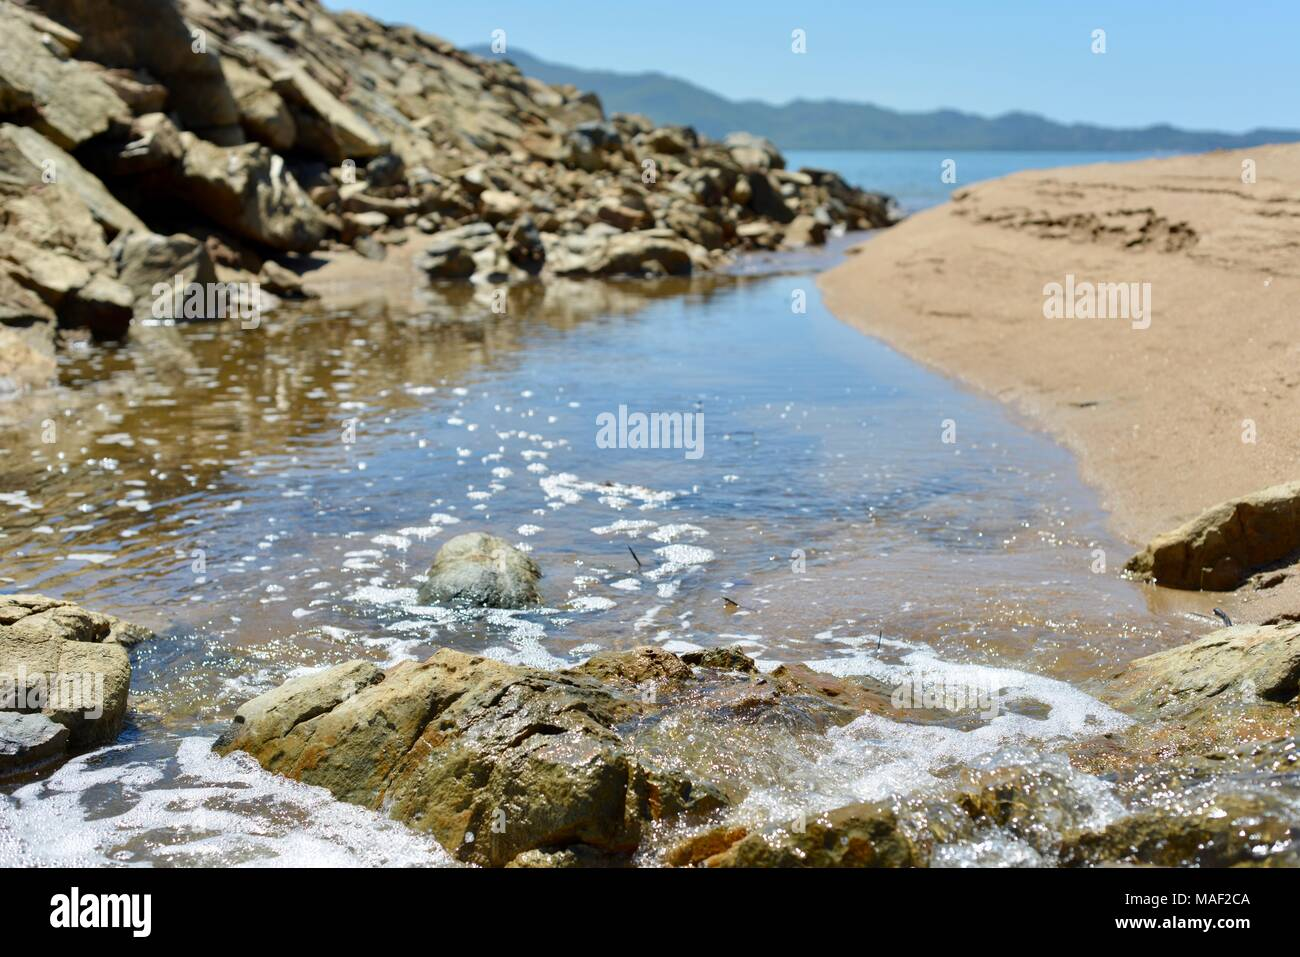 Water flowing out of a small creek at low tide, Shelly Cove trail at Cape Pallarenda Conservation Park Queensland Australia - Stock Image